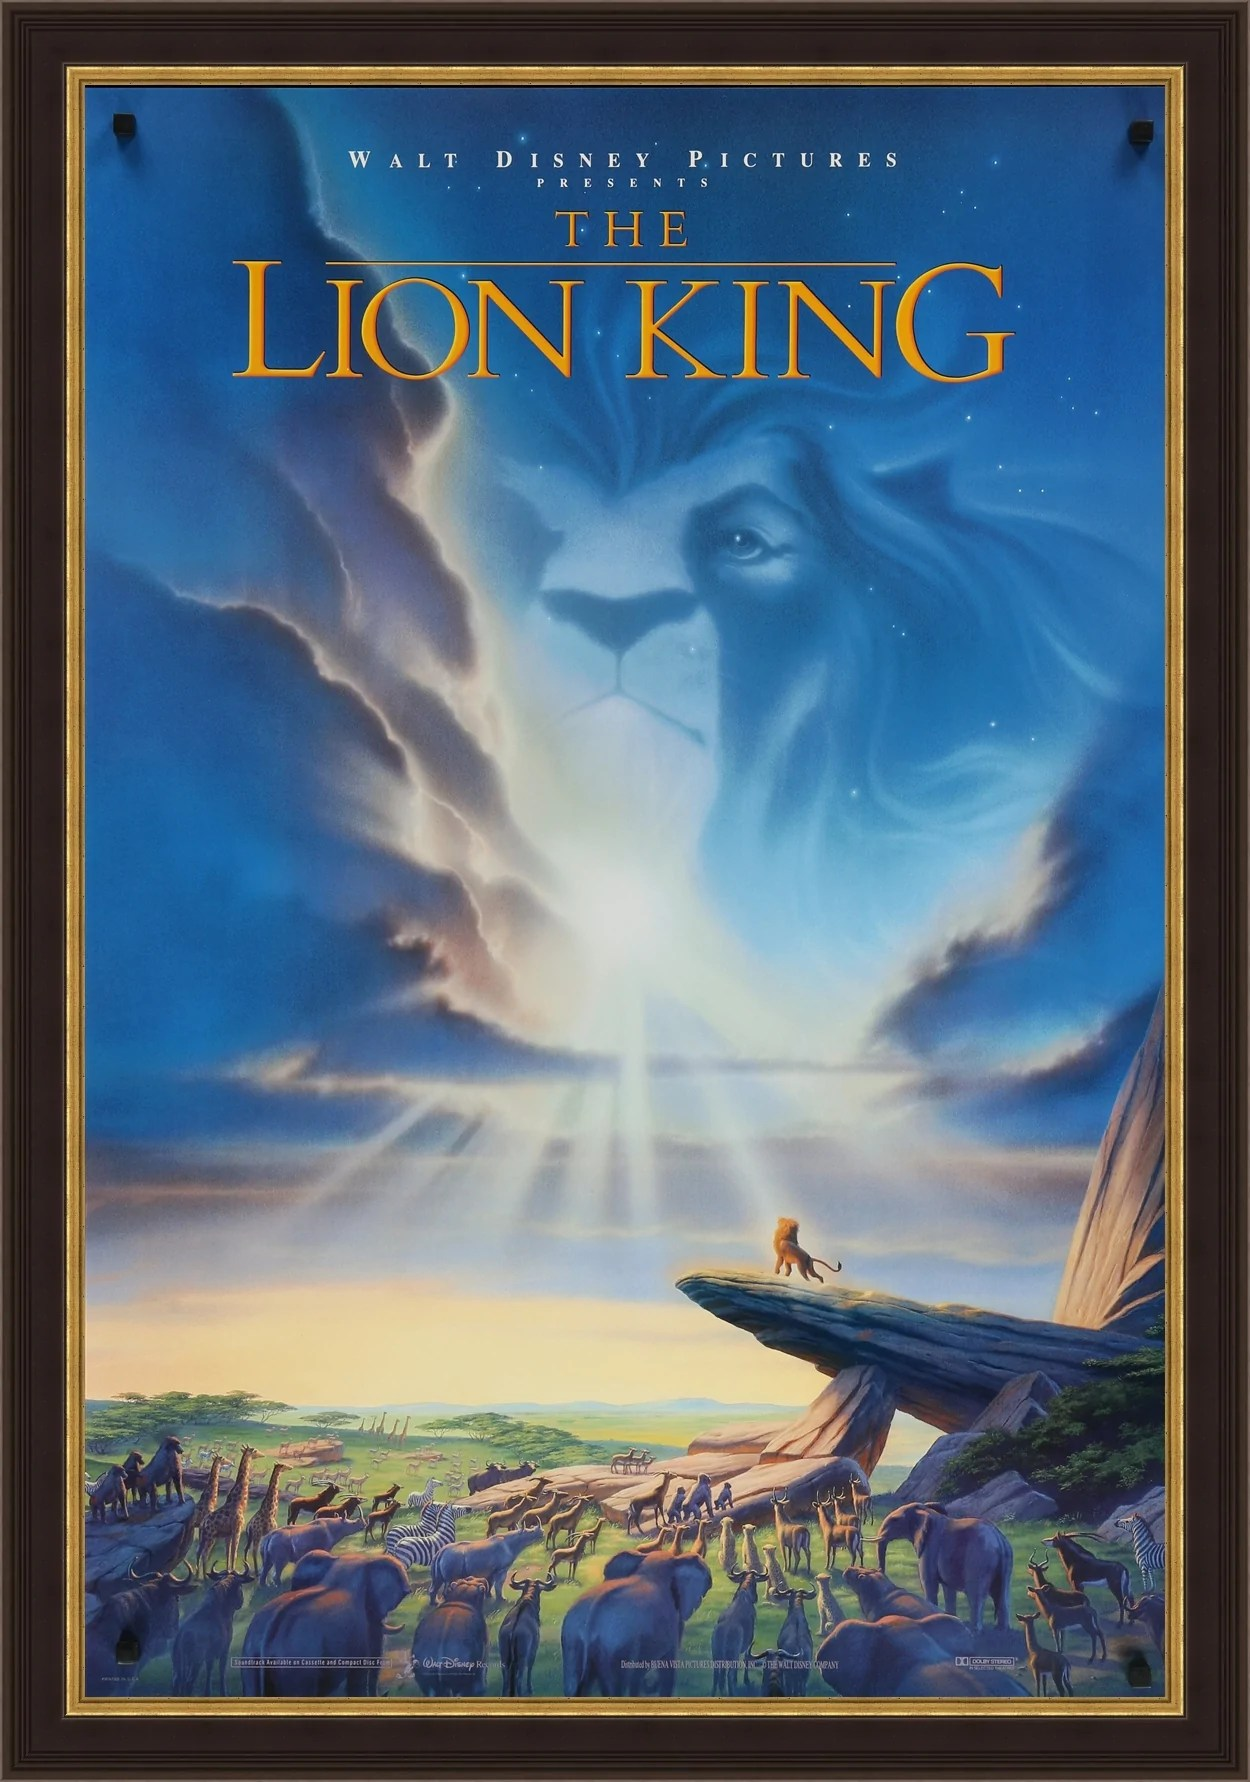 the lion king movie poster artist star